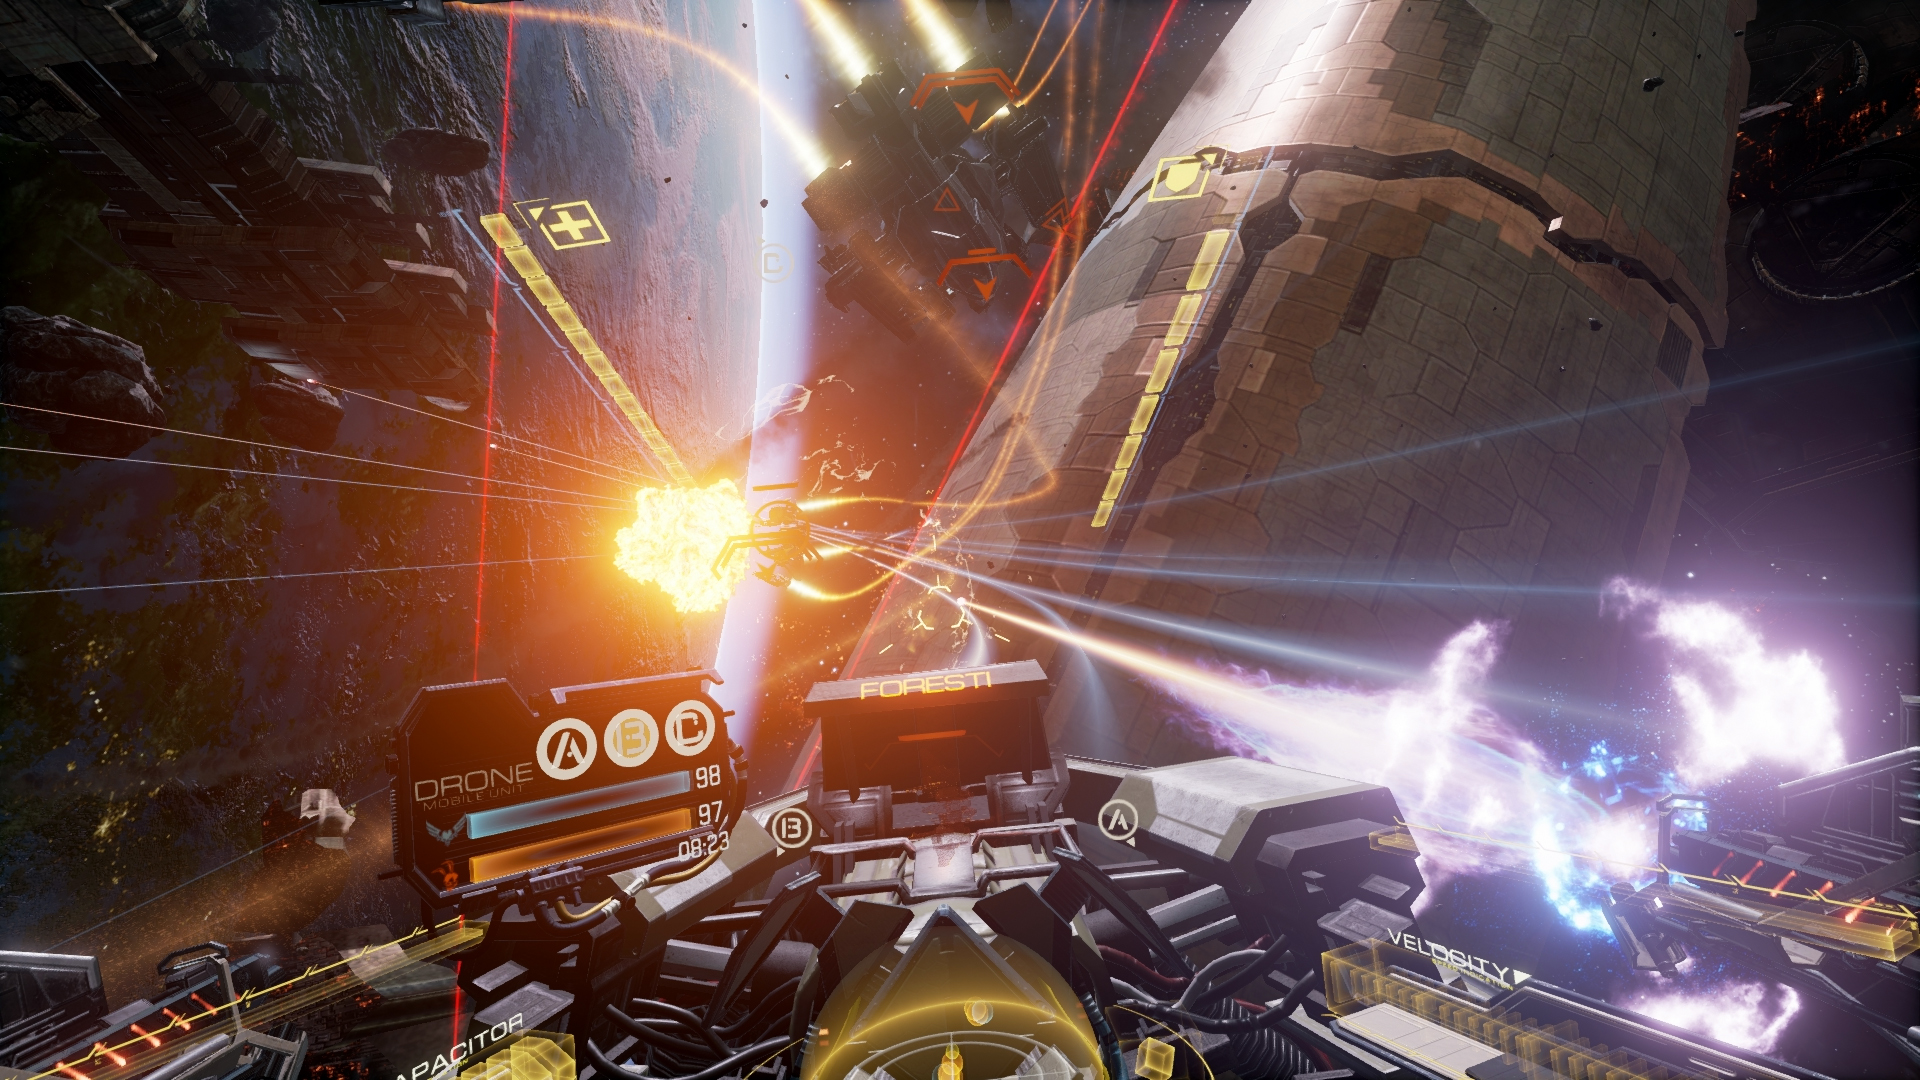 056c6736cdd9 Eve  Valkyrie alpha  Hands-on with the Oculus Rift s killer app ...